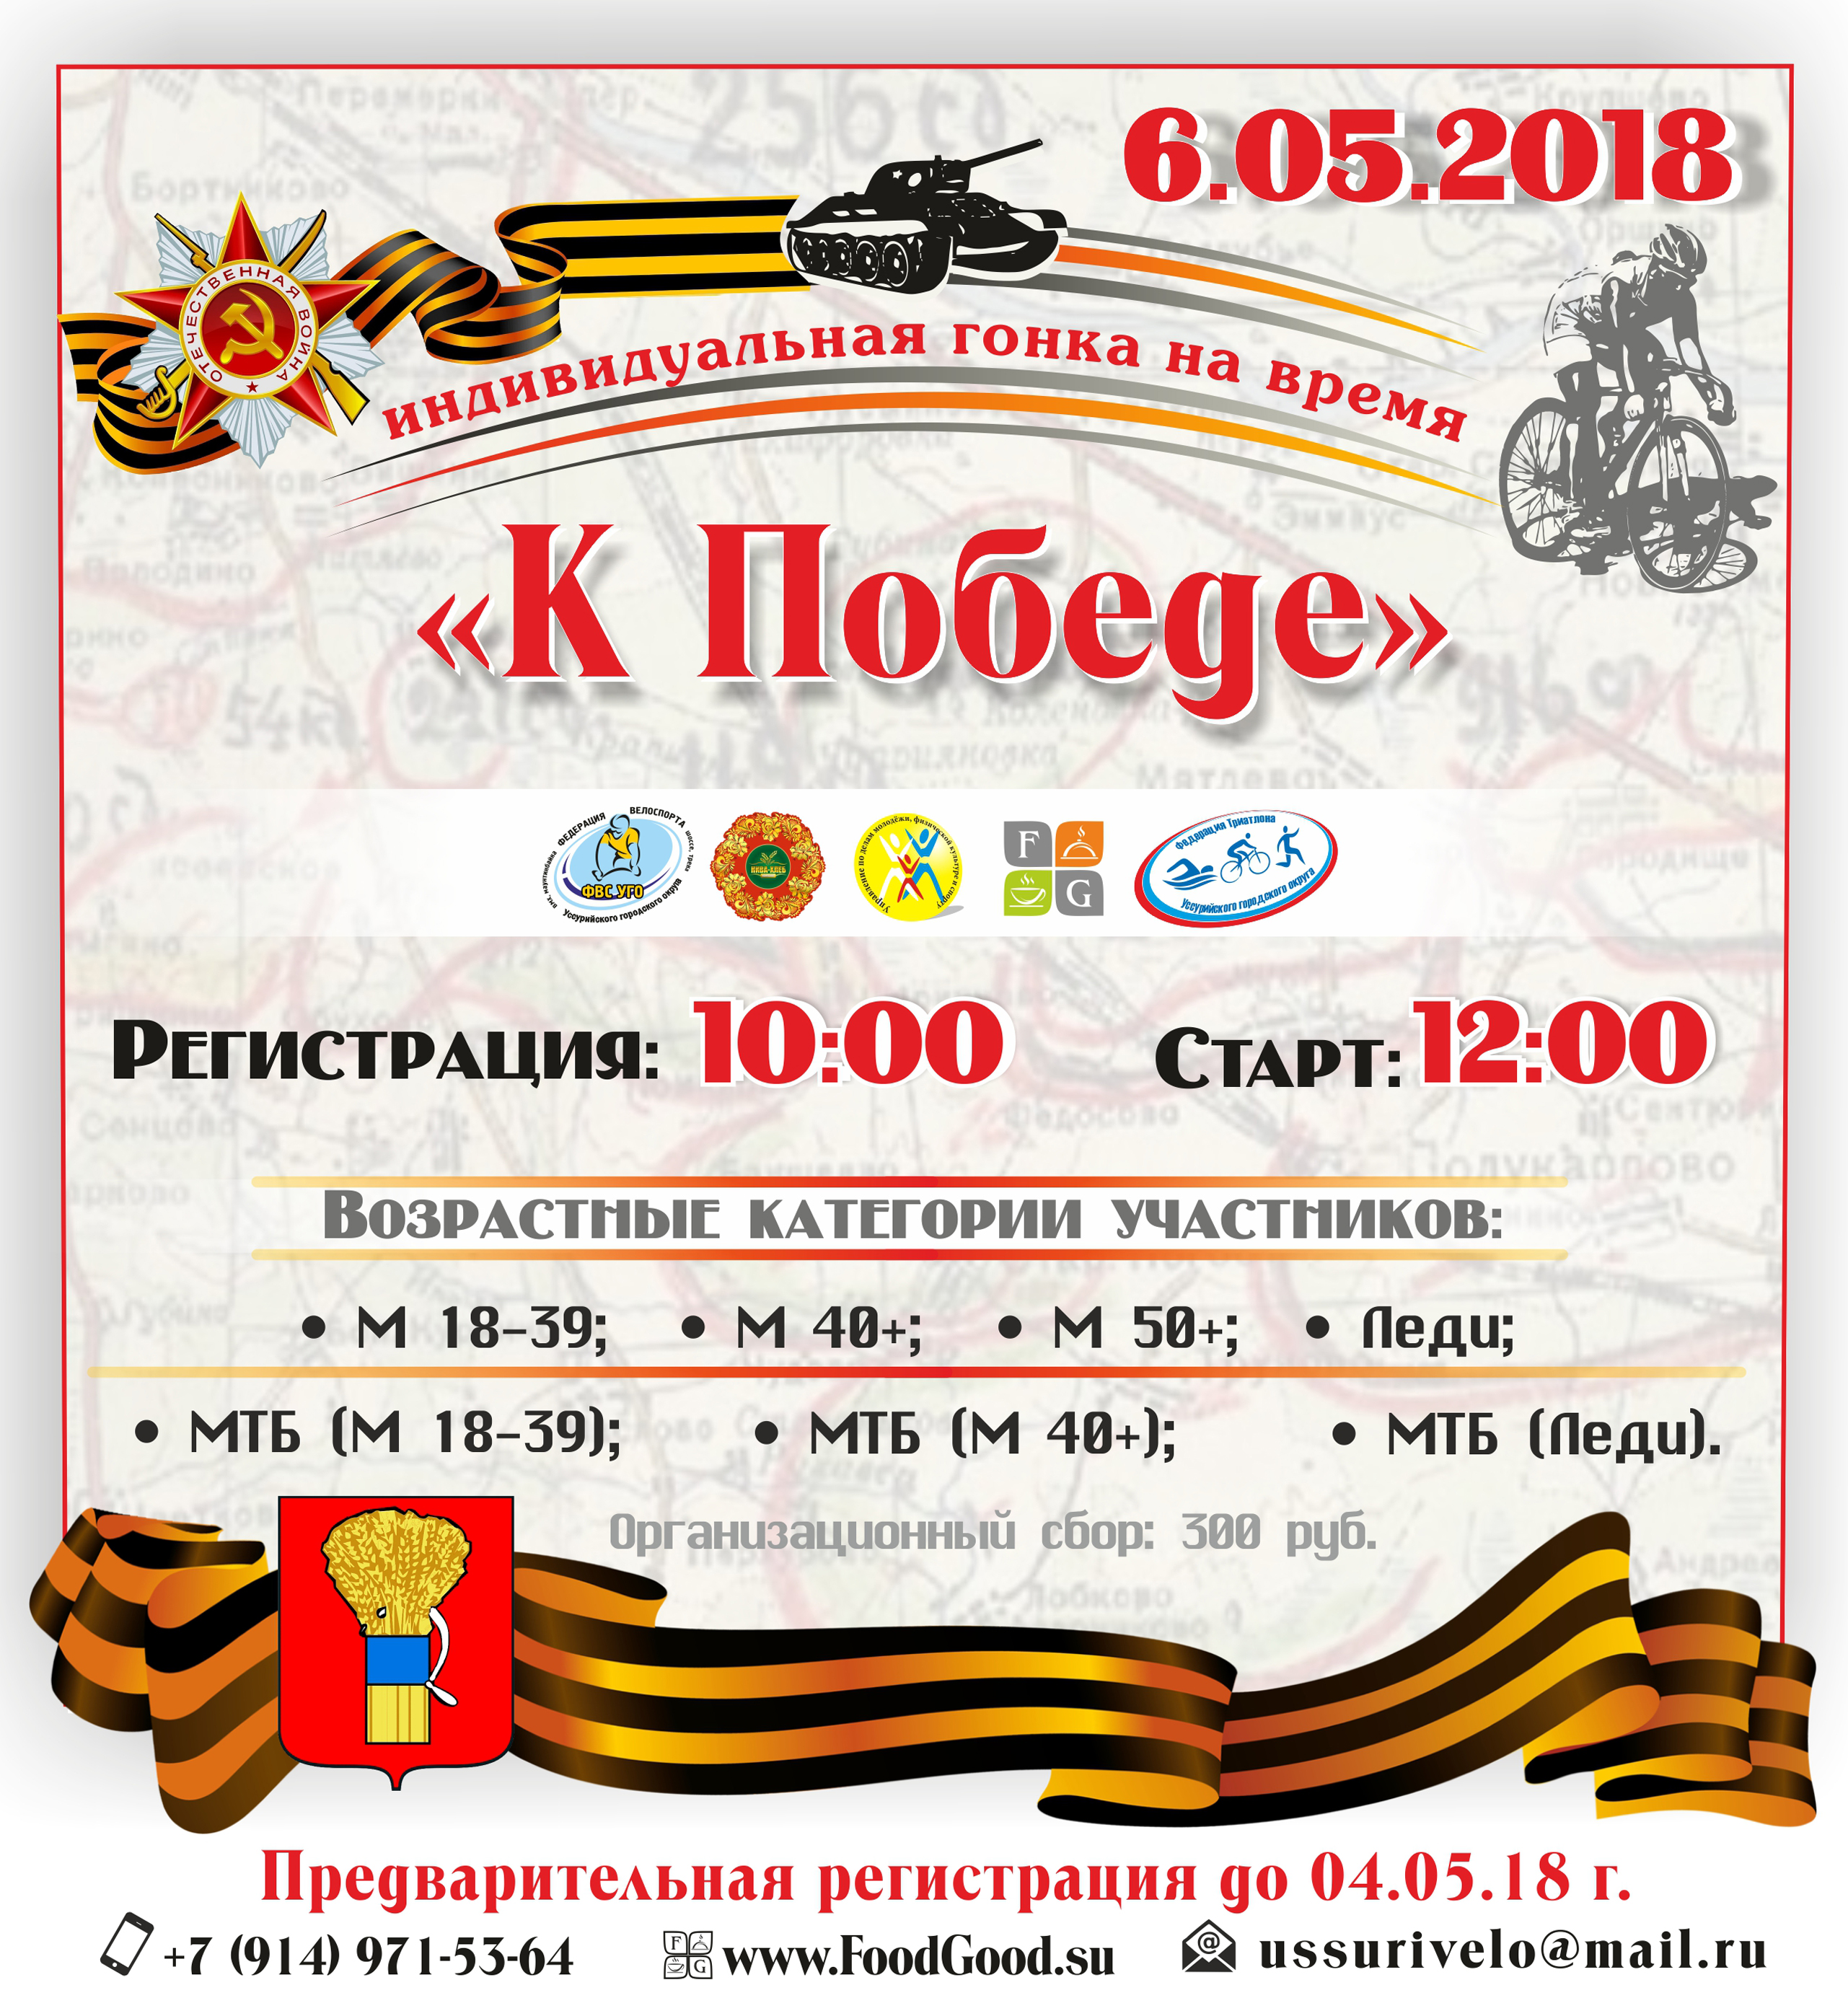 http://orgeo.ru/files/event/banner_top/6495_o.jpg